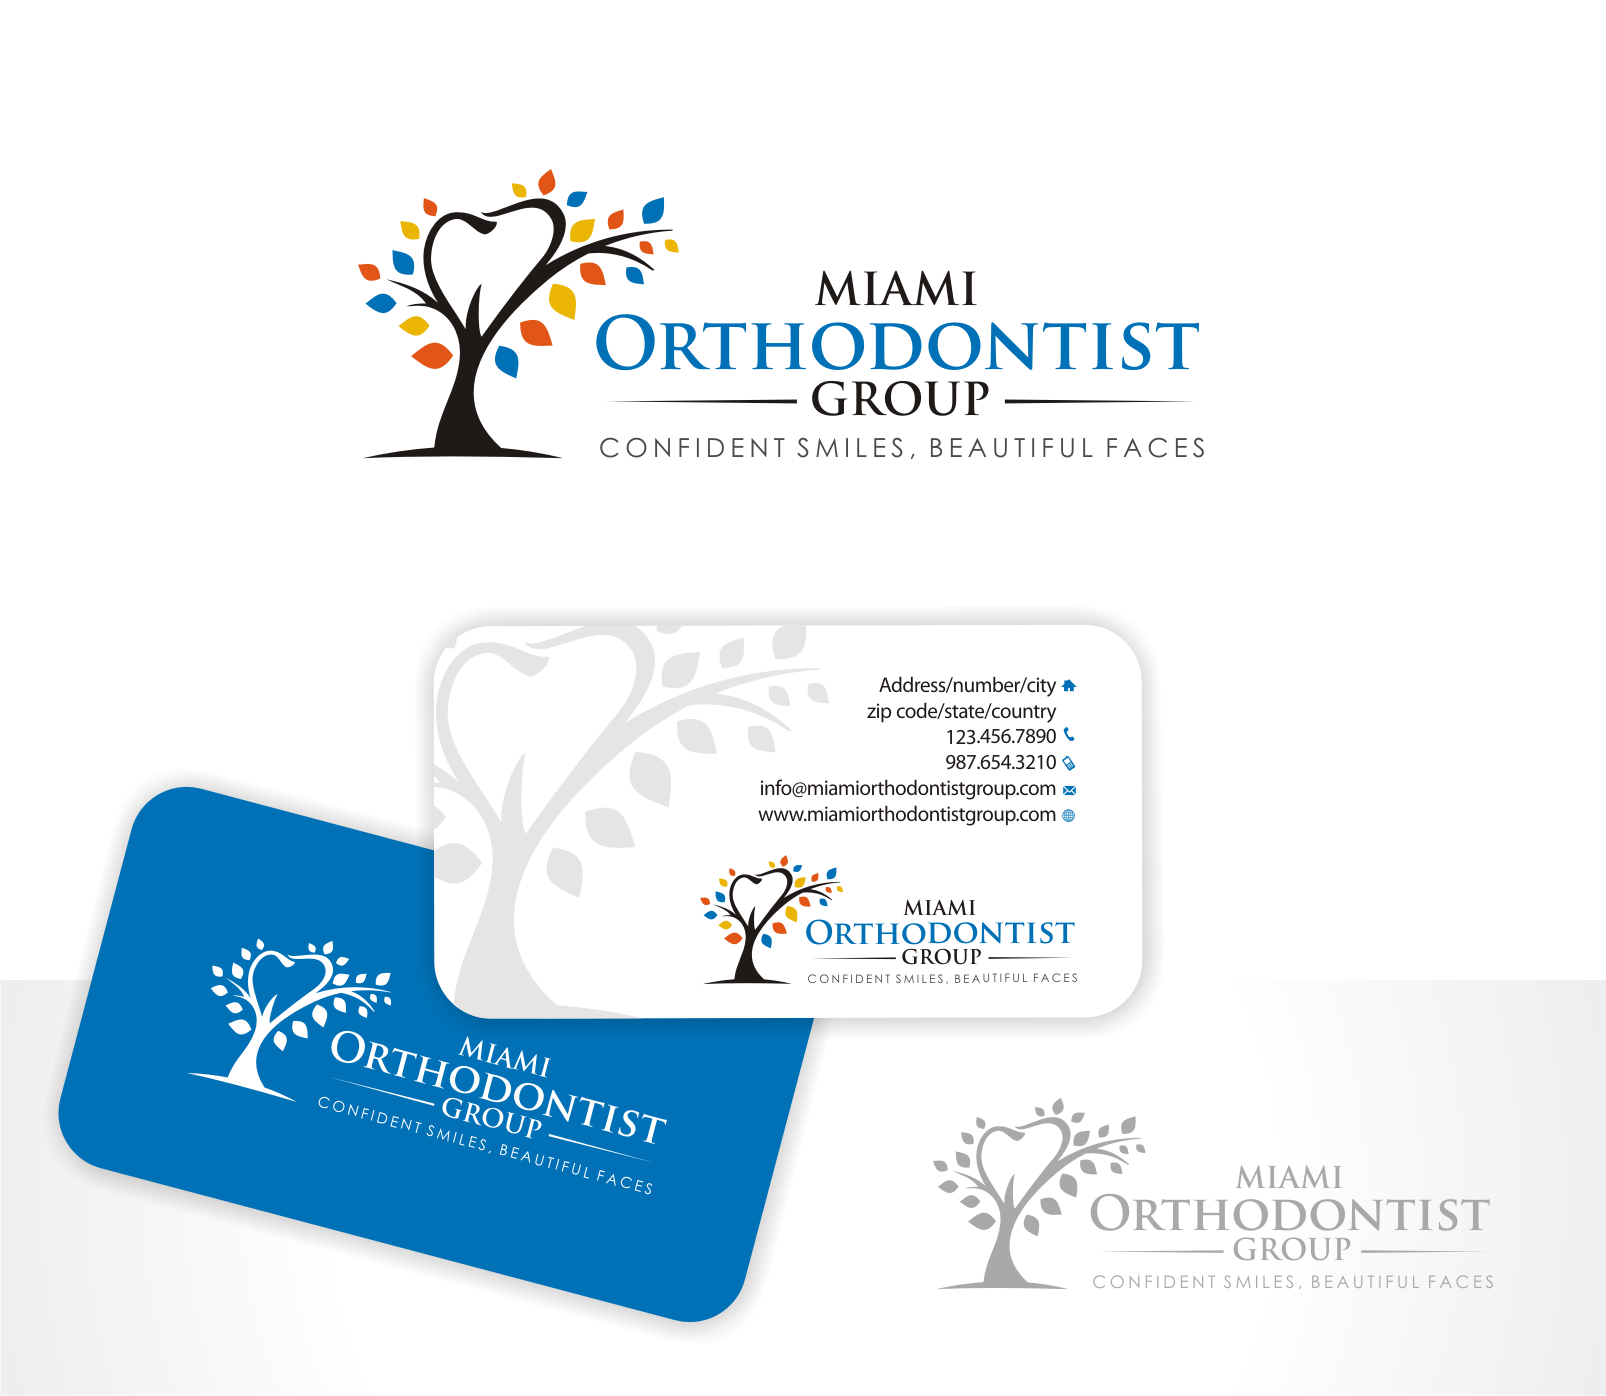 New logo wanted for Miami Orthodontist Group